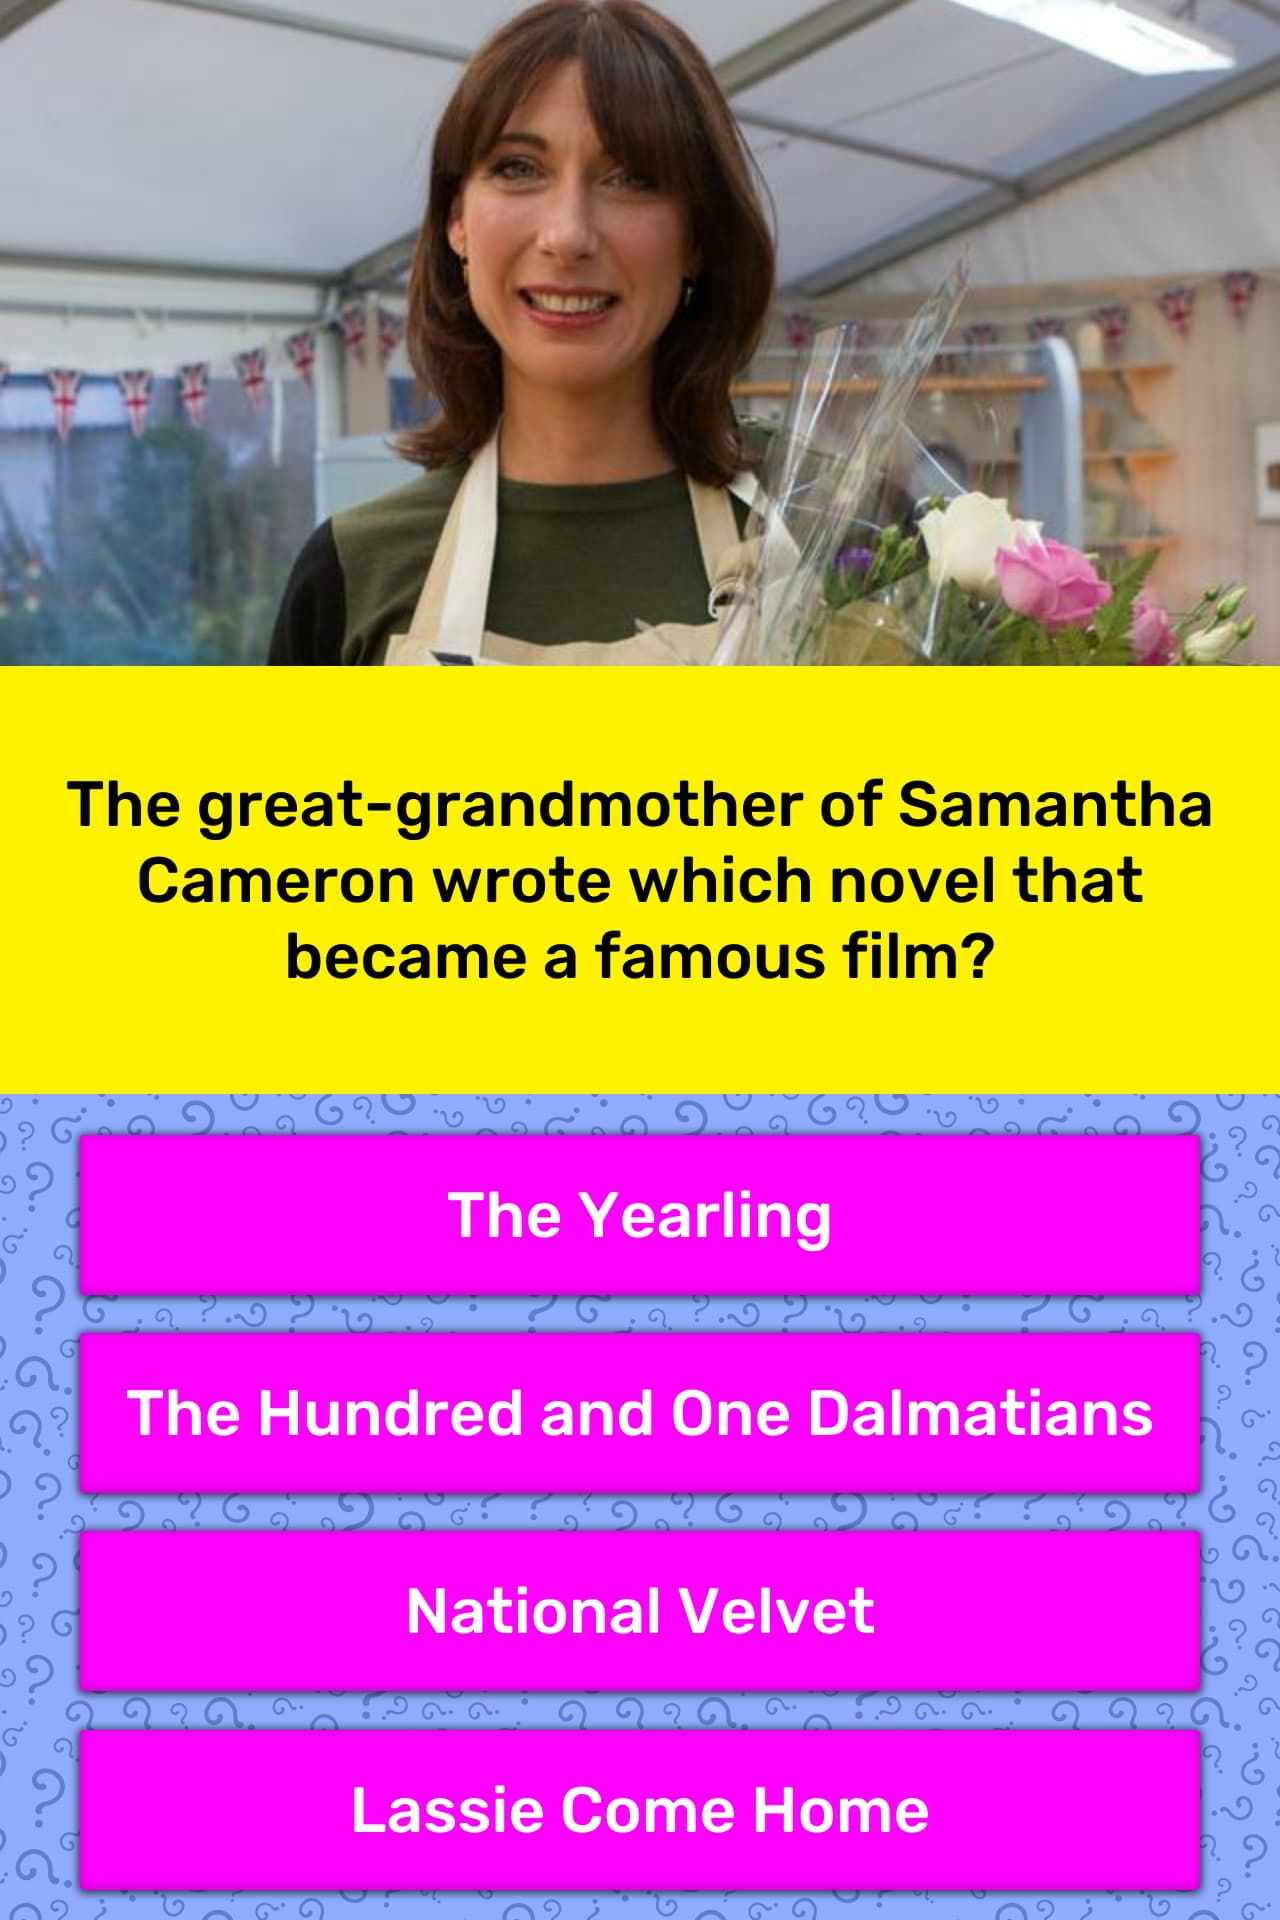 The great-grandmother of Samantha    | Trivia Answers